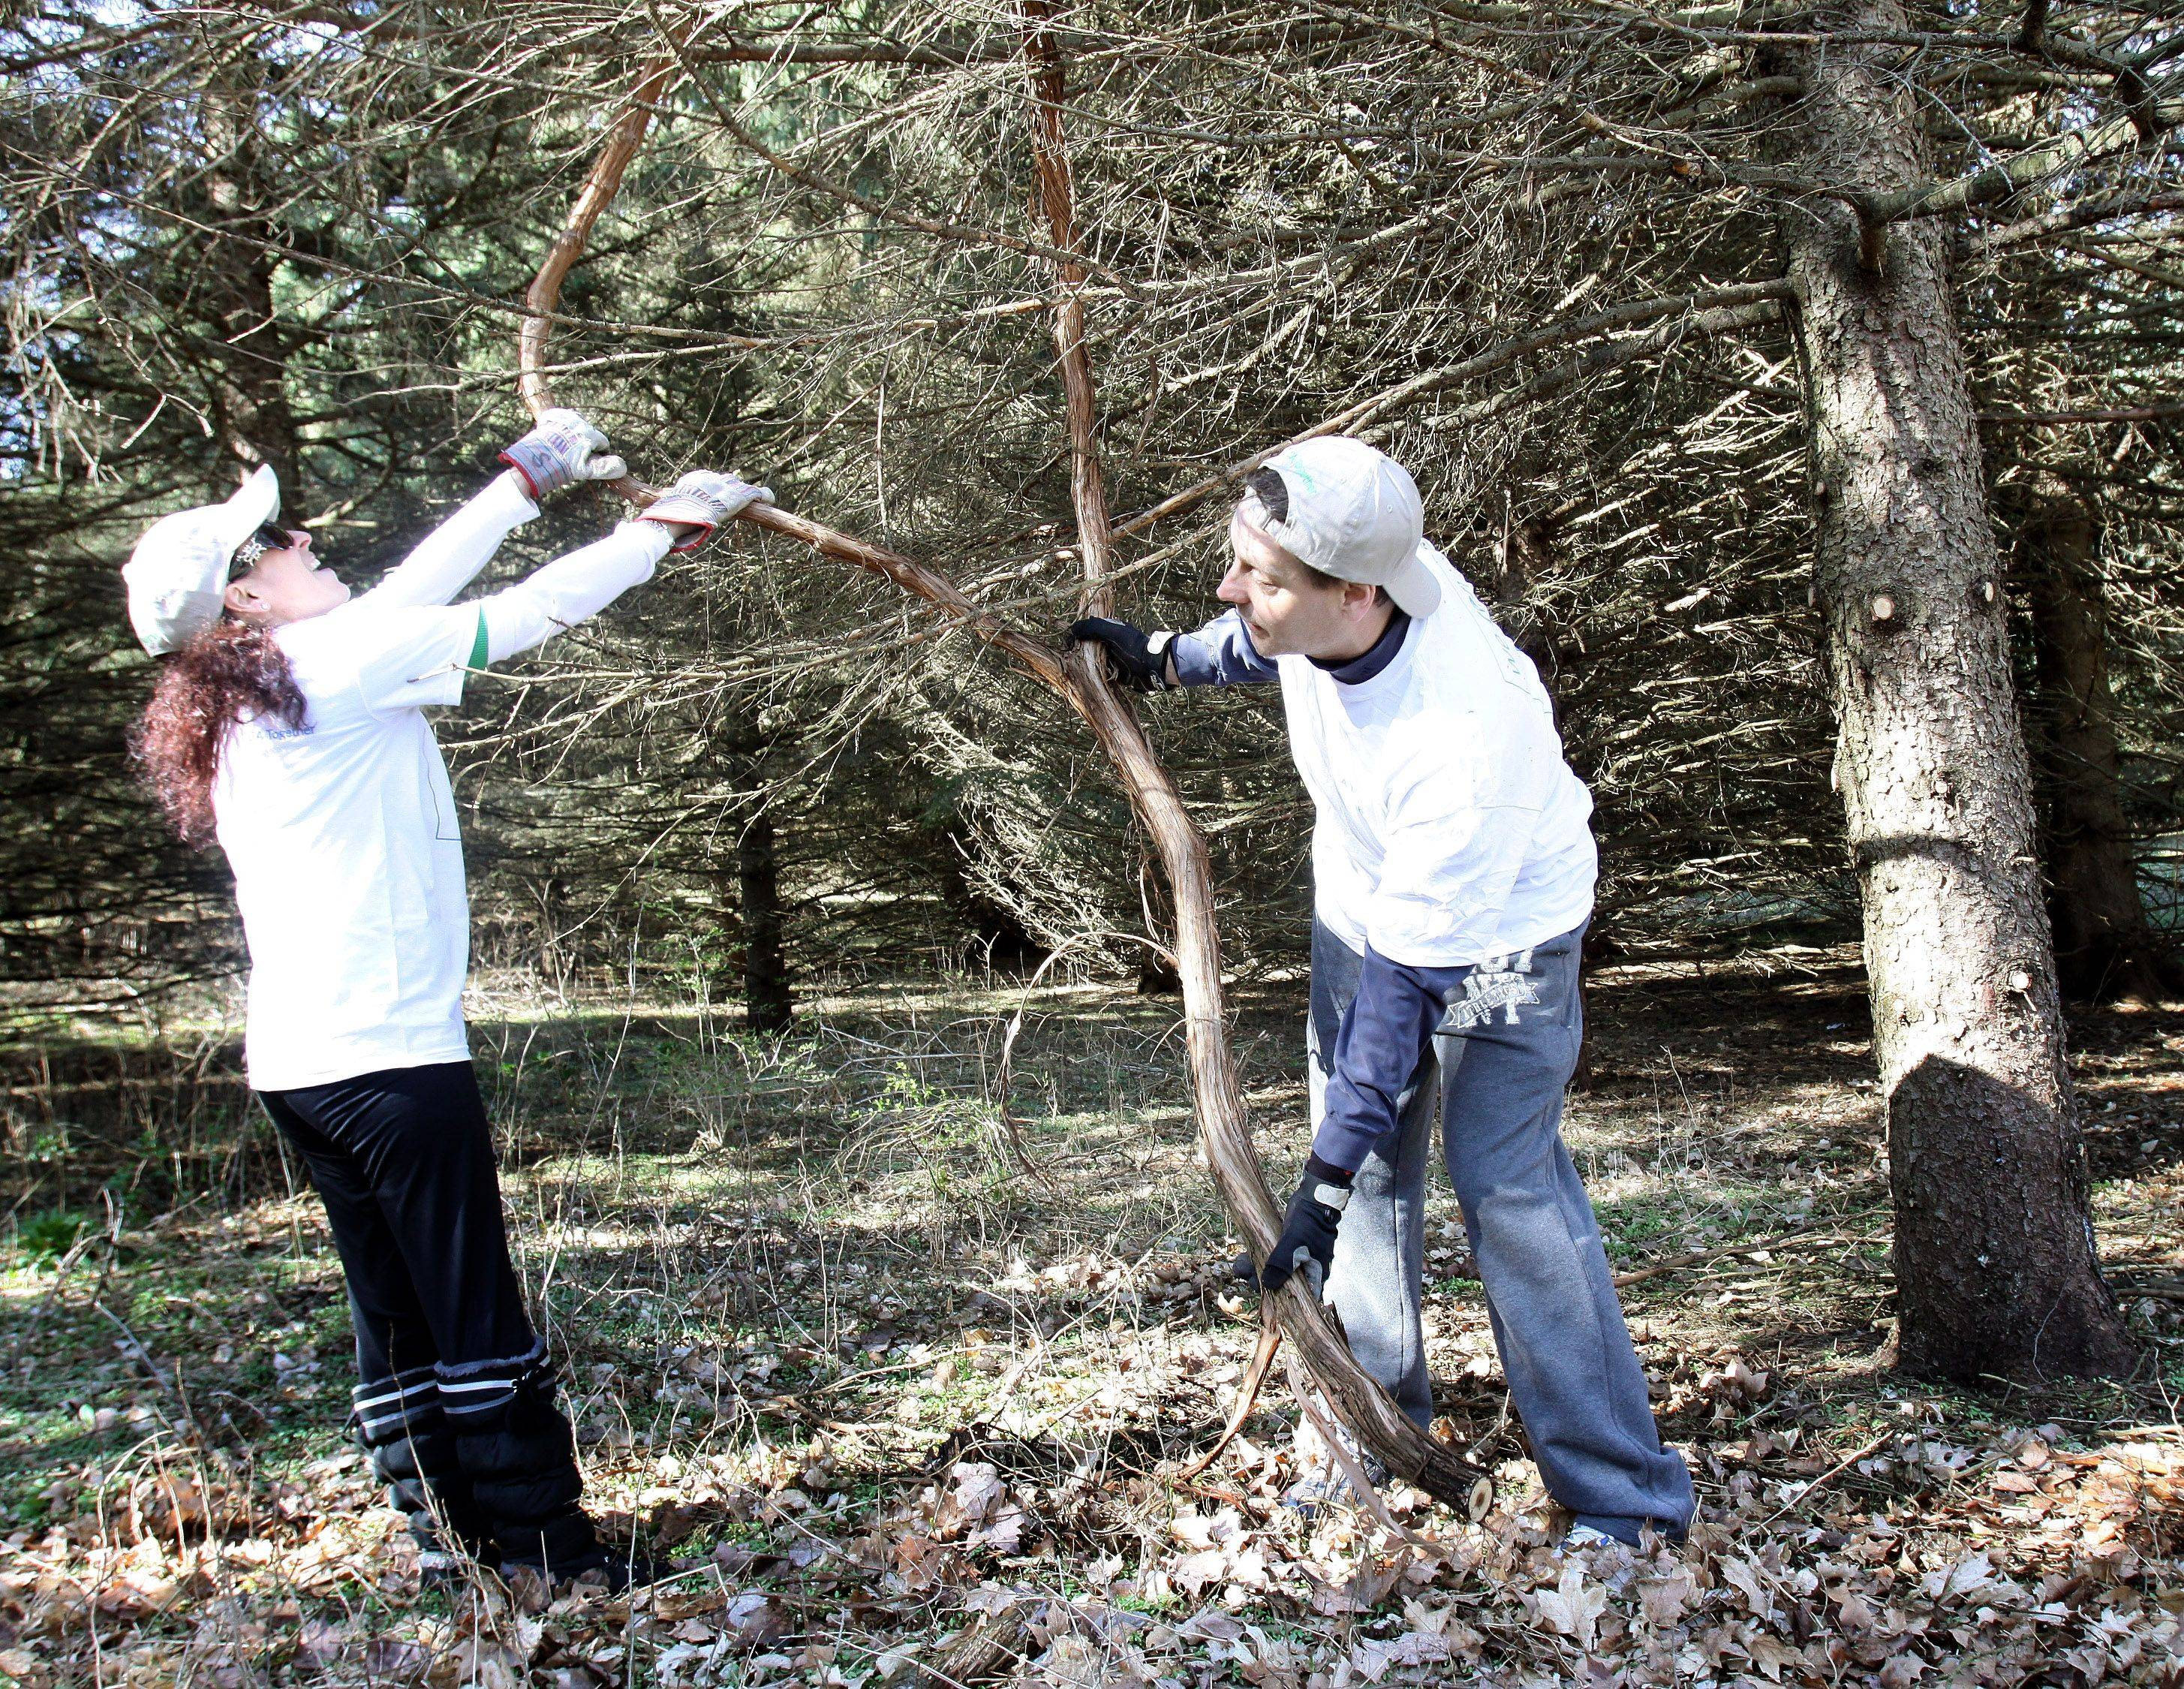 Diana Parks and Sean Markley of CA Technologies in Lisle try to remove a large vine from an evergreen Thursday at St. James Farm Forest Preserve near Warrenville. It was part of an annual worldwide Earth Day event for the company.